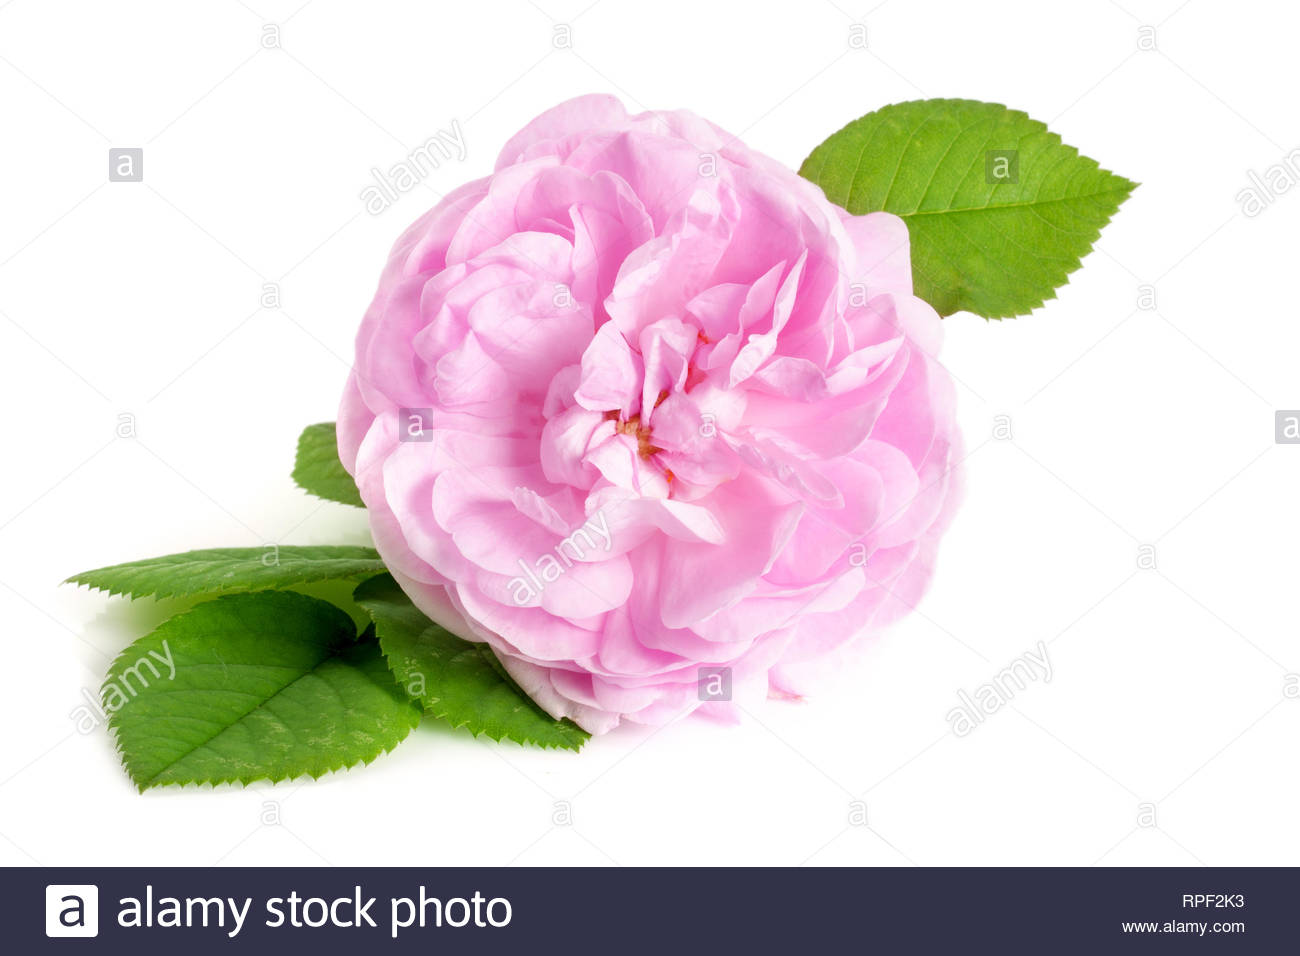 wild rose blooming flower isolated on a white background - Stock Image